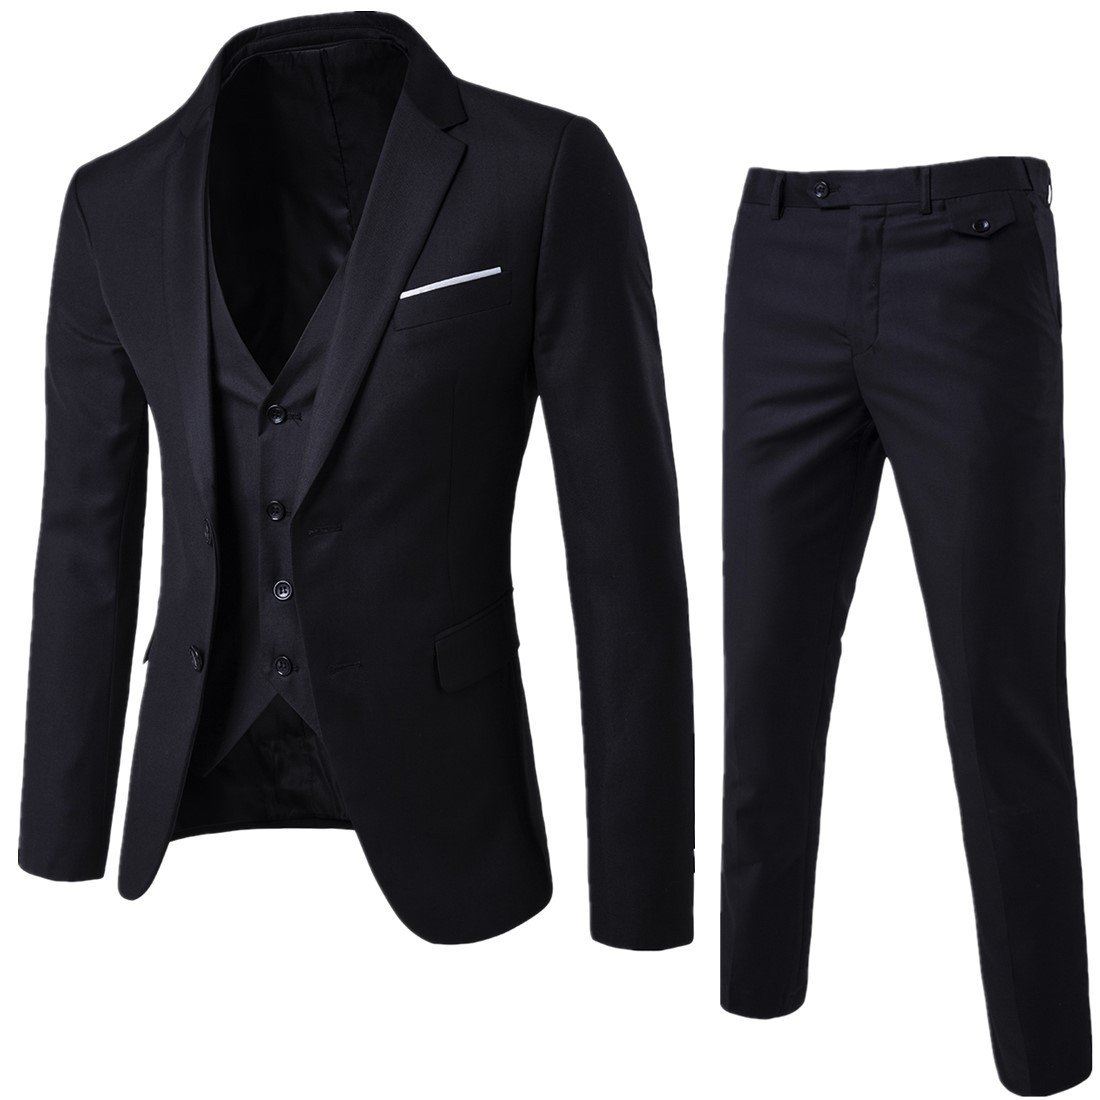 WEEN CHARM Men's Two Button Notch Lapel Slim Fit 3-piece Suit Blazer Jacket Tux Vest & Trousers Set